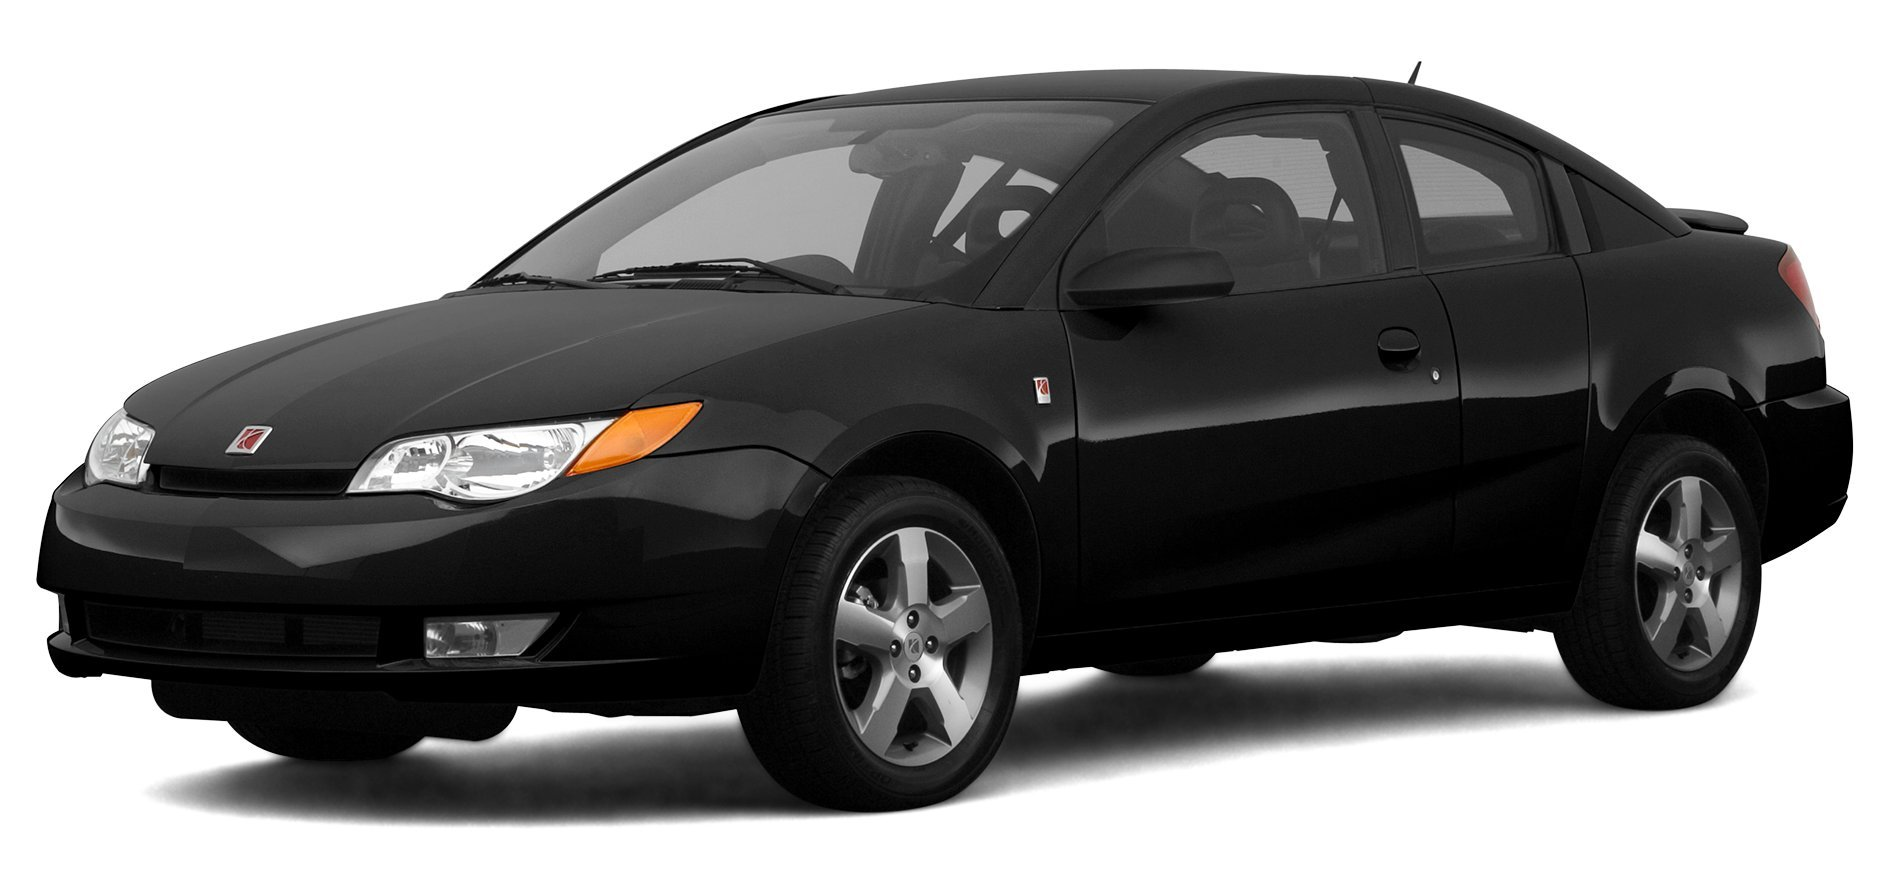 amazon com 2007 saturn ion reviews images and specs vehicles rh amazon com 2007 Saturn Ion Coupe 2007 Saturn Ion Coupe